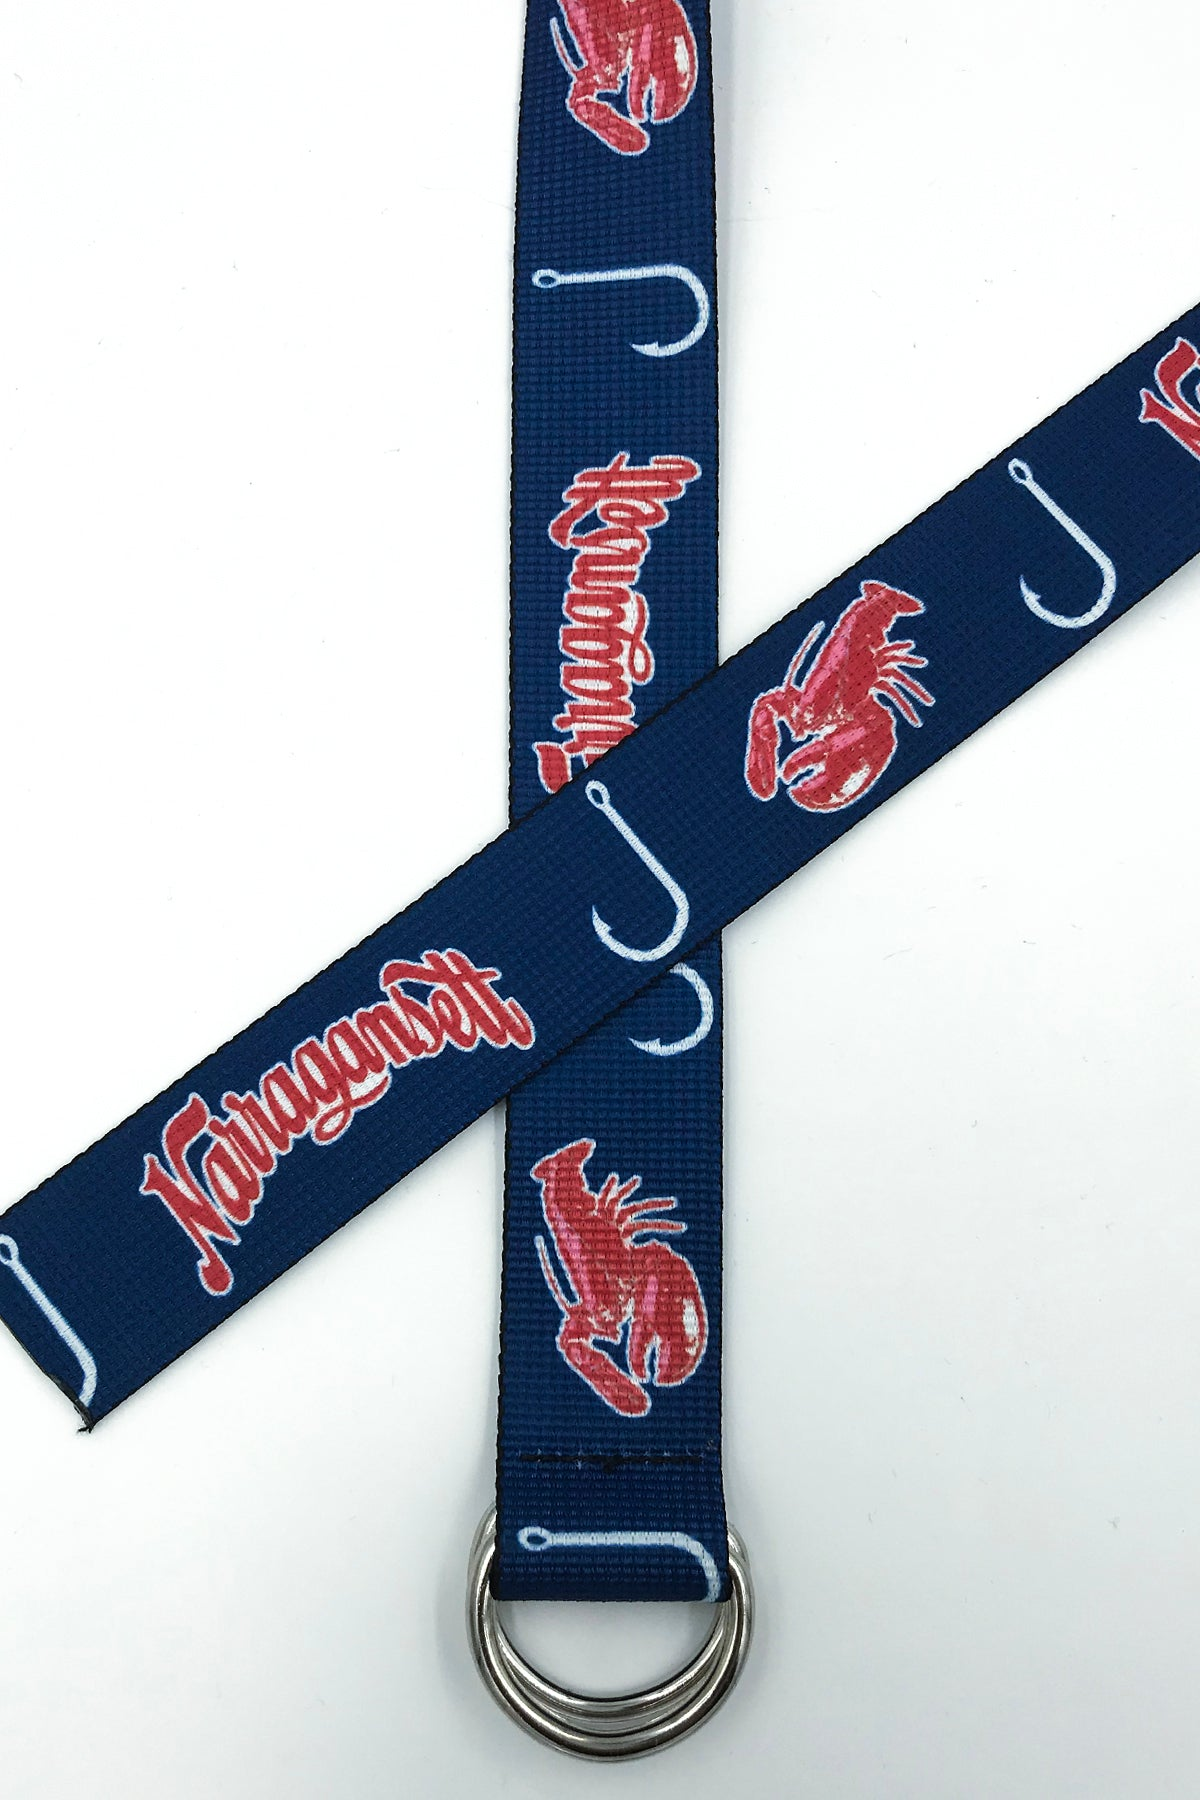 The Chum Angle X 'Gansett Fresh Catch Belt